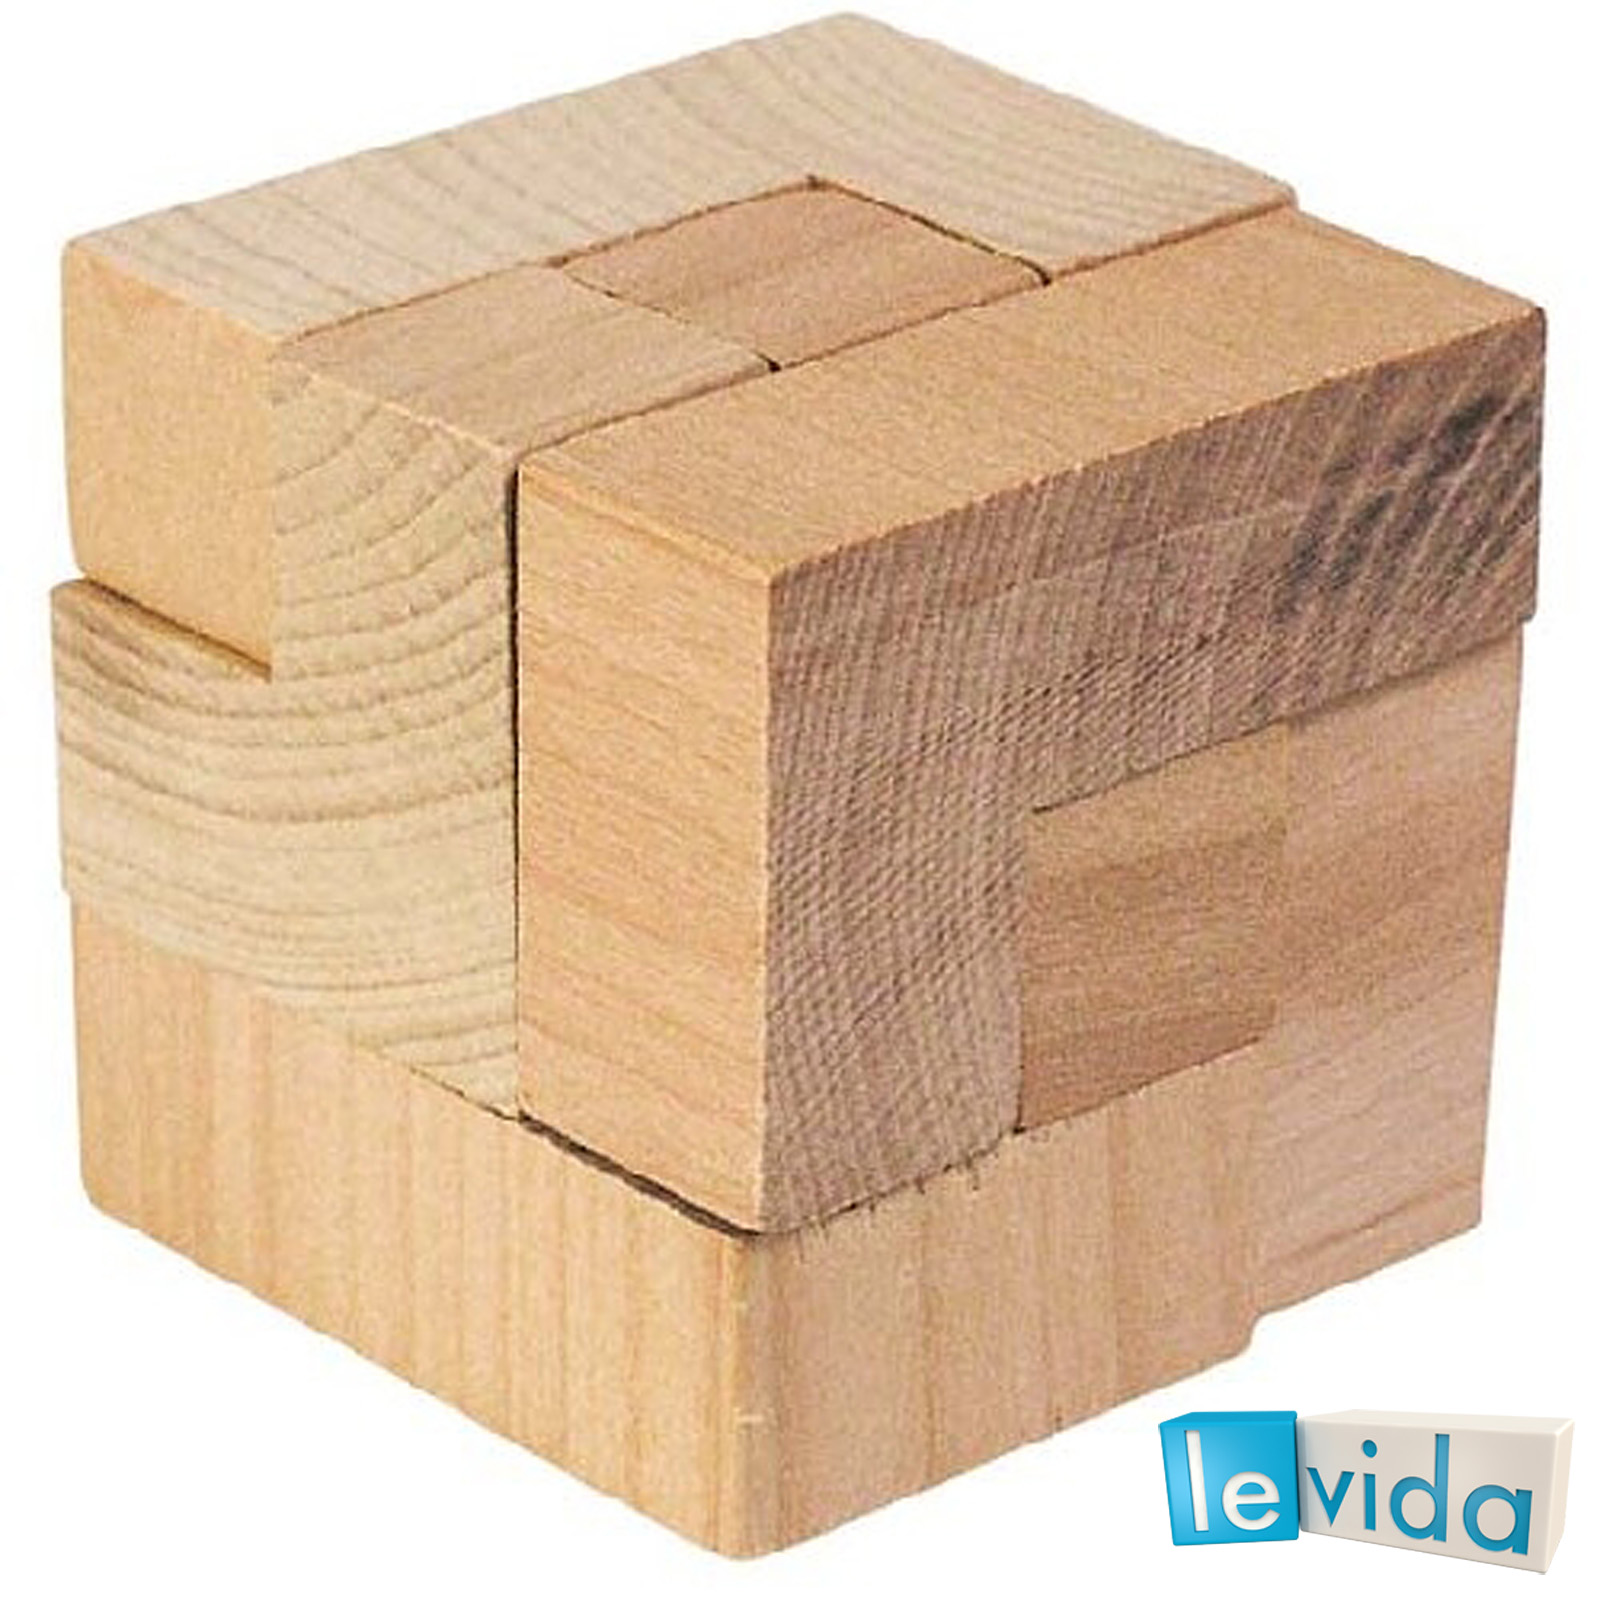 The Magic Cube - Wooden Puzzle by Goki | LeVida Toys